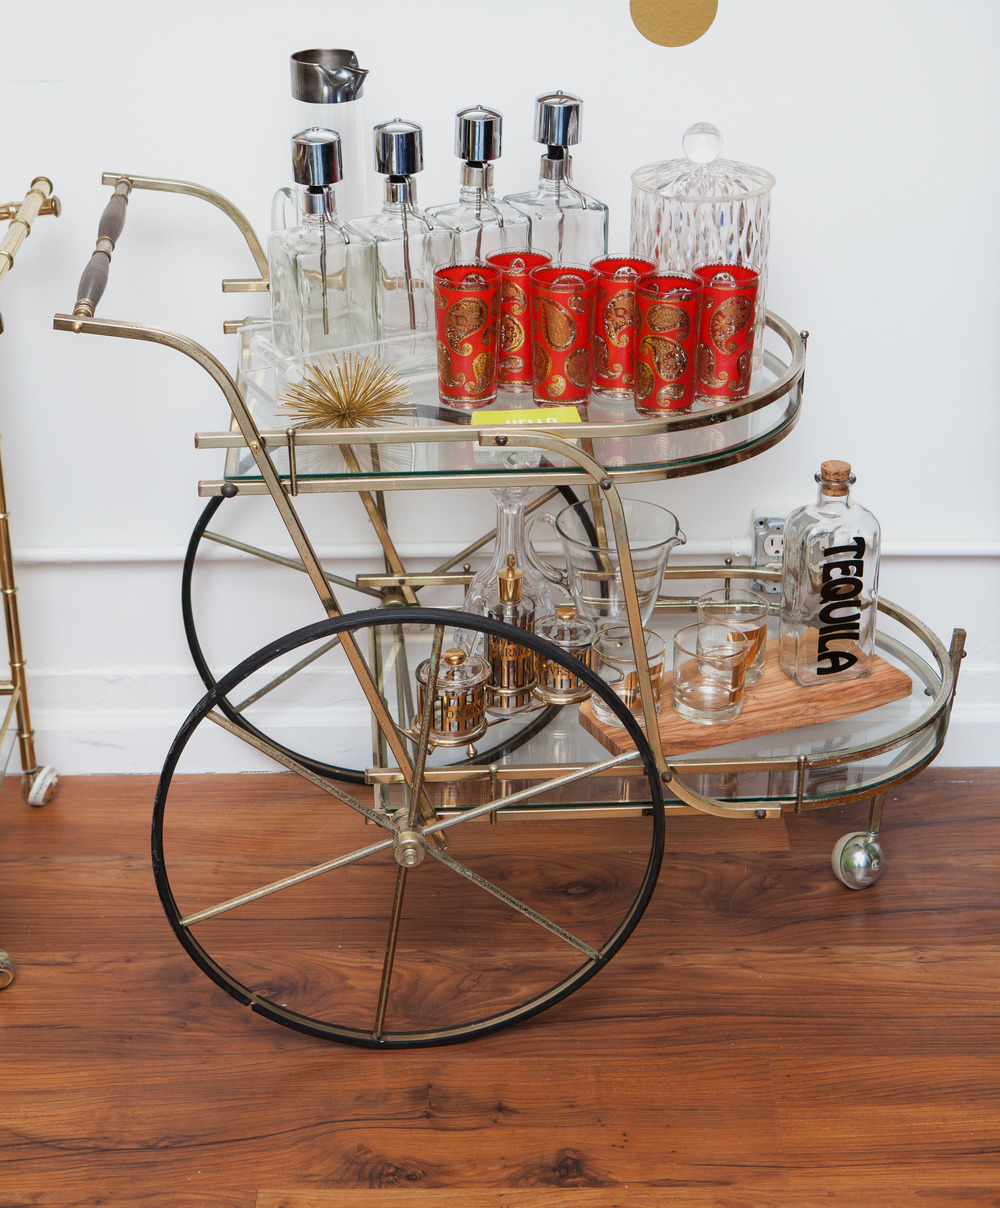 STATEMENT BAR CART